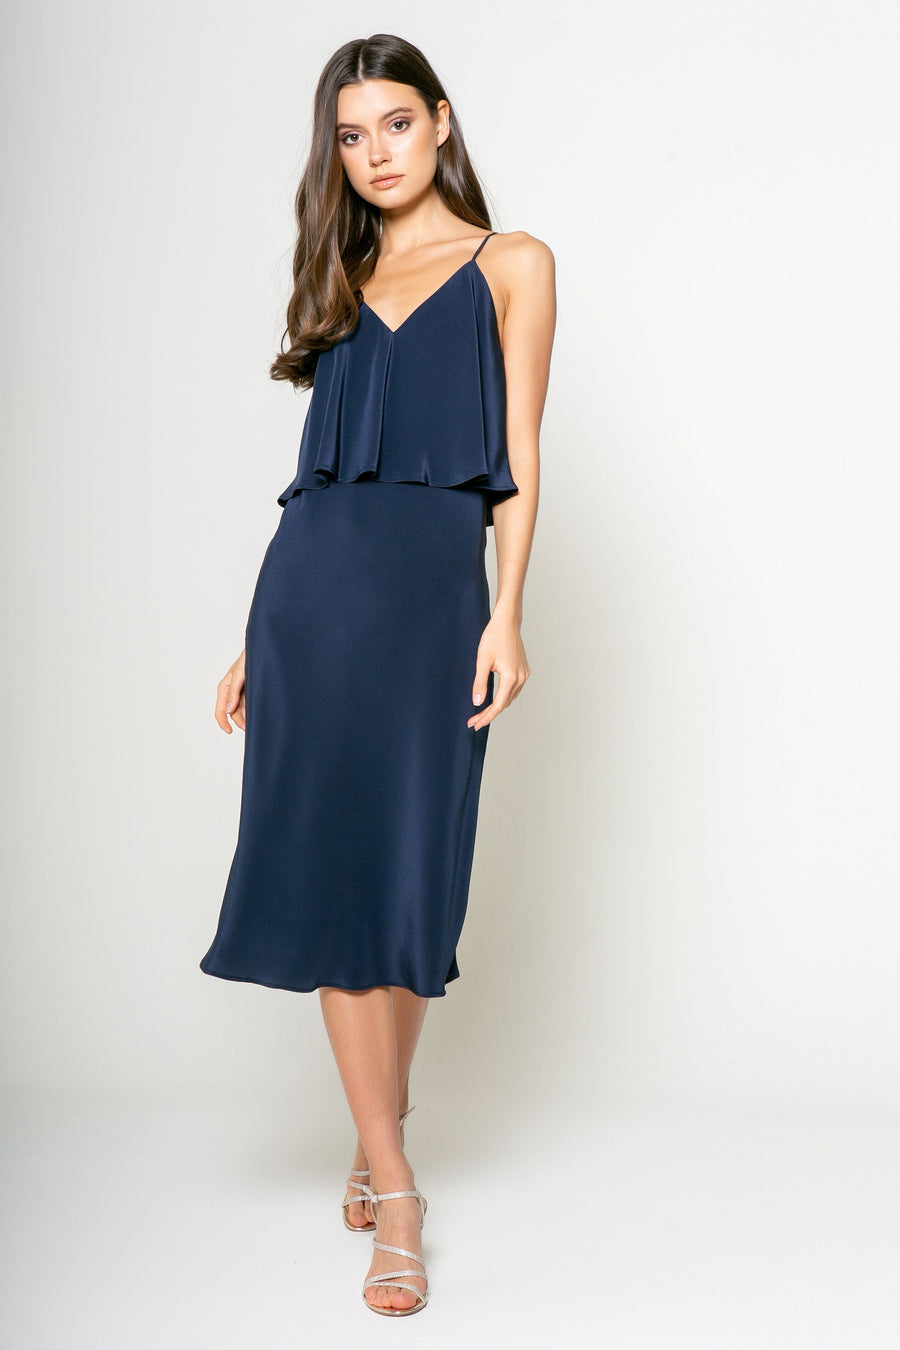 Lavender Brown Shift Midi Dress in Navy